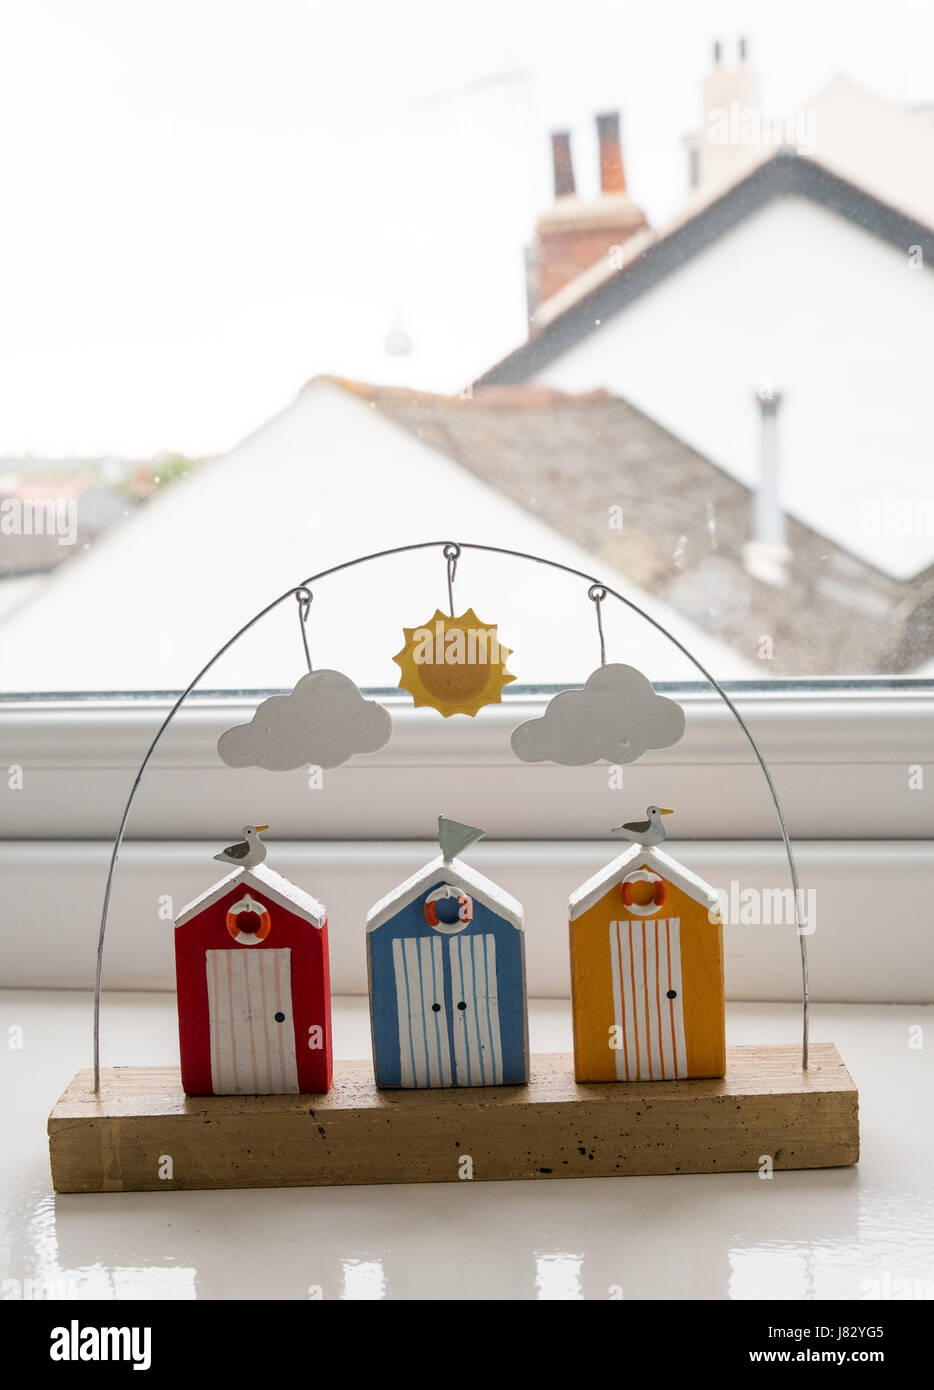 Ornamental row of beach huts with rooftops in the background.  May 2017 - Stock Image